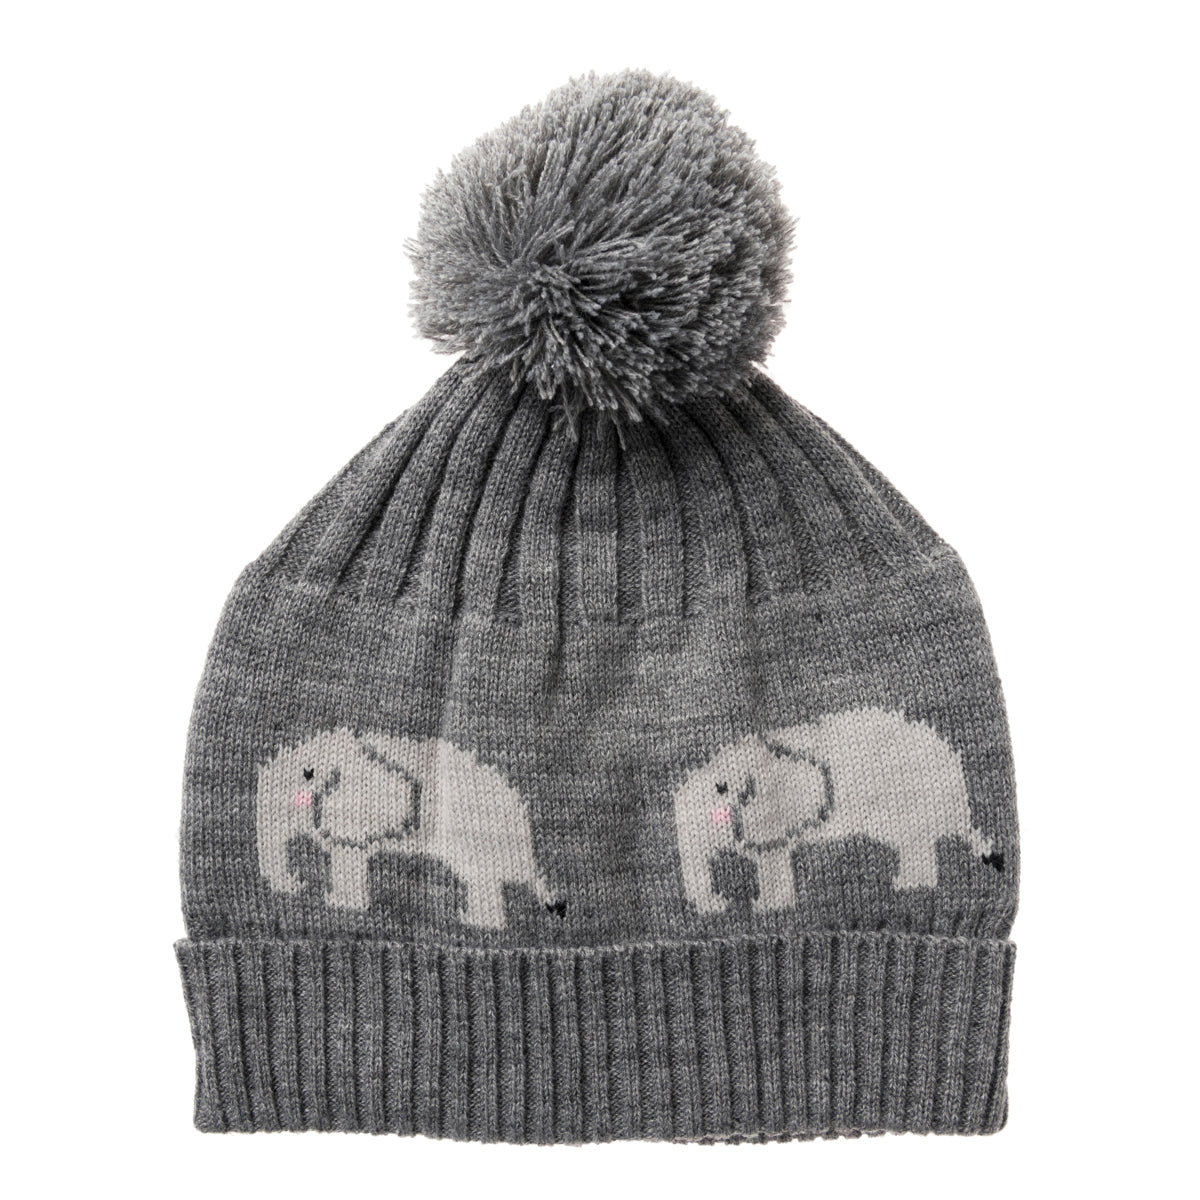 Elephant Knitted Hat